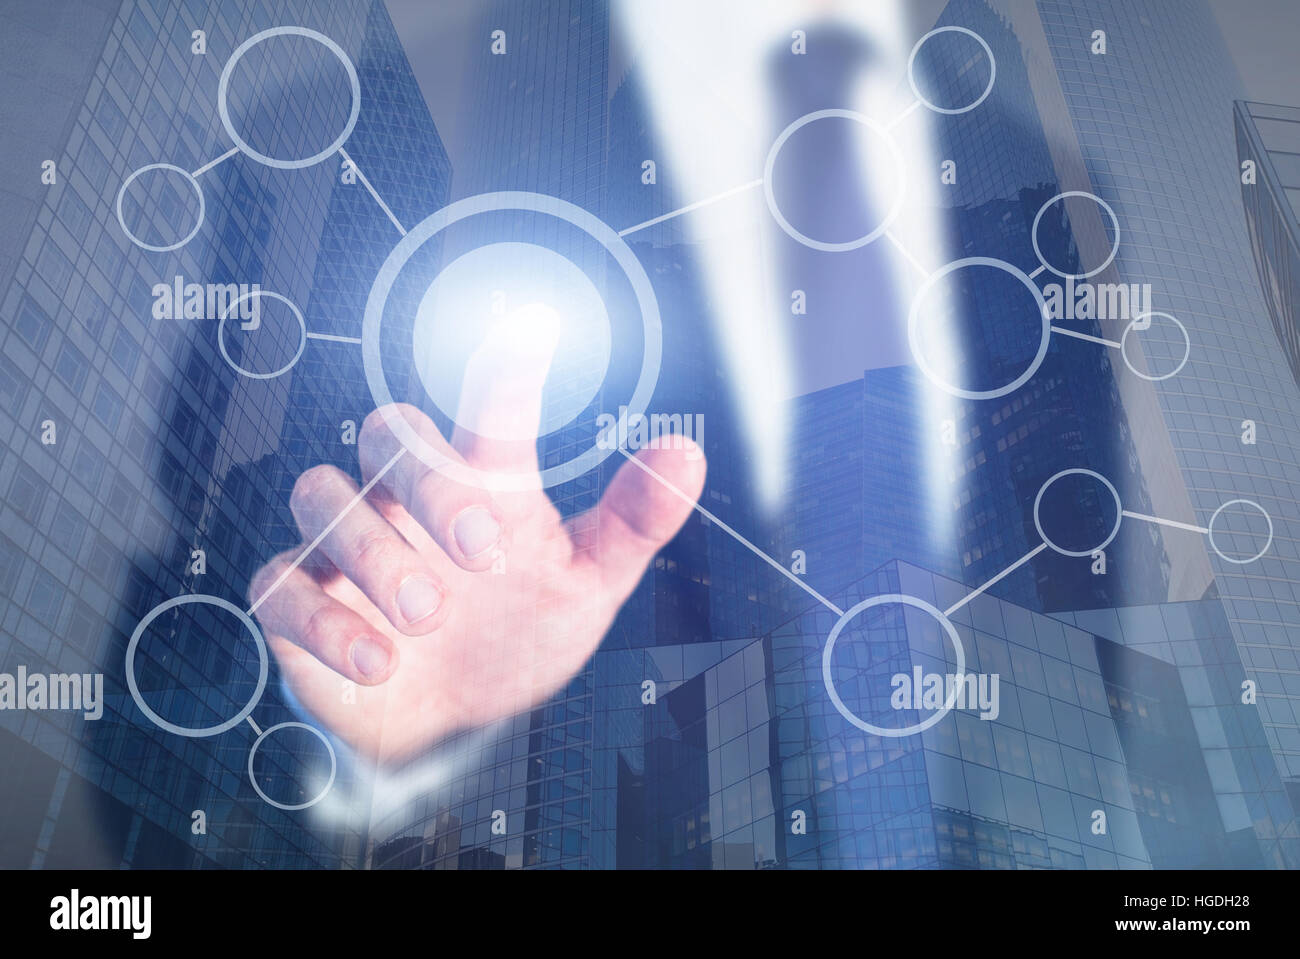 blank flow chart on abstract touch screen, business process or goal concept - Stock Image